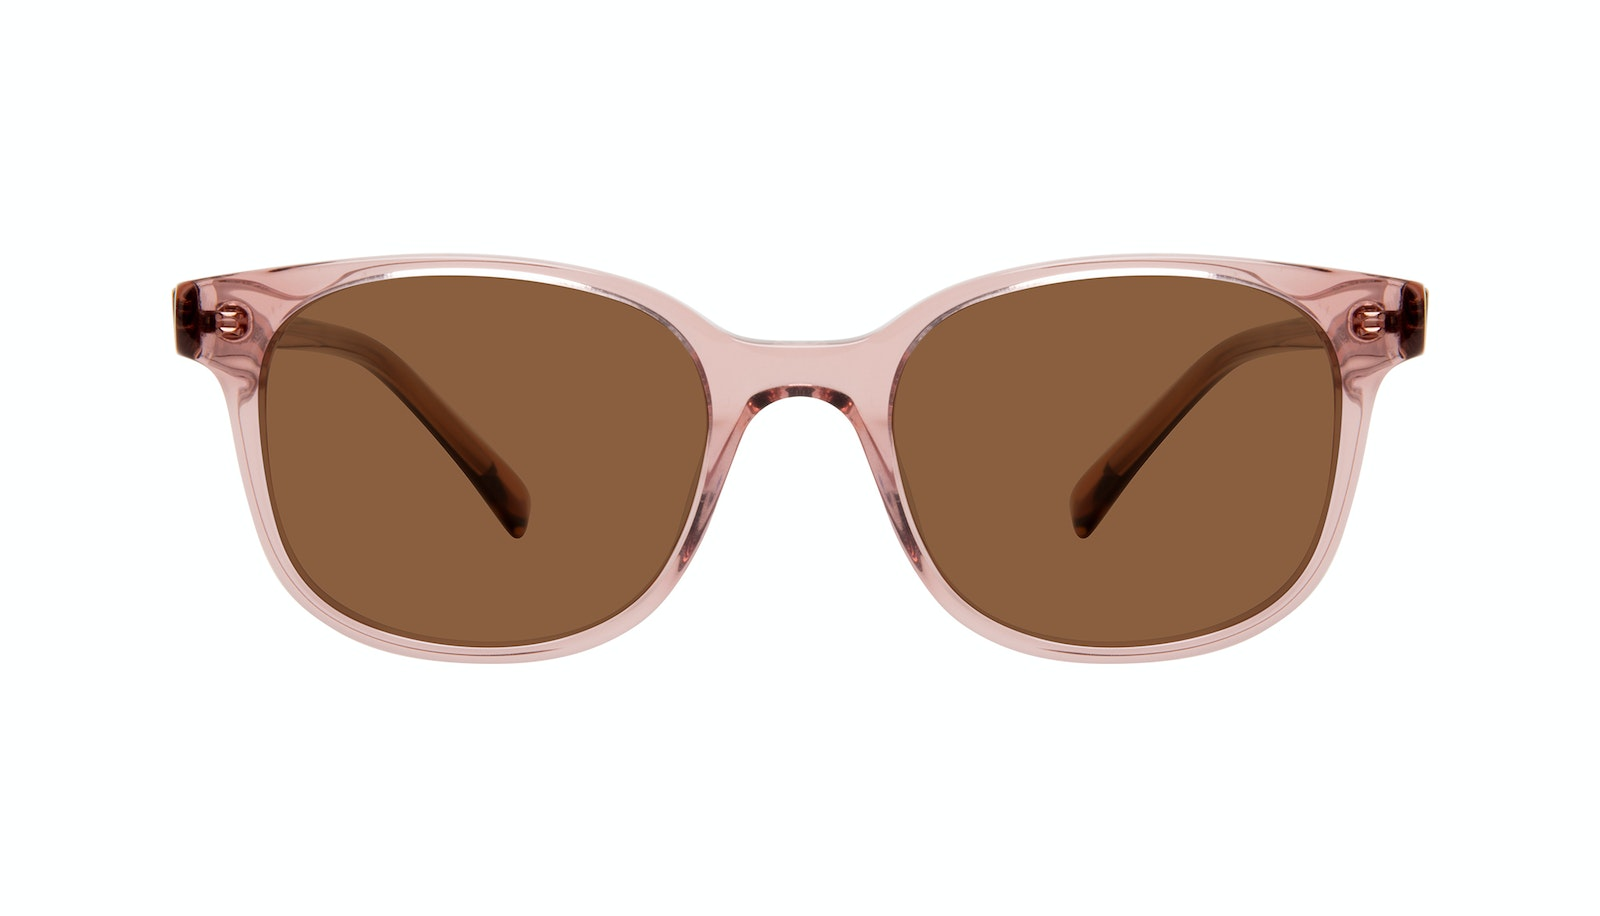 Affordable Fashion Glasses Square Sunglasses Women Unique Rose